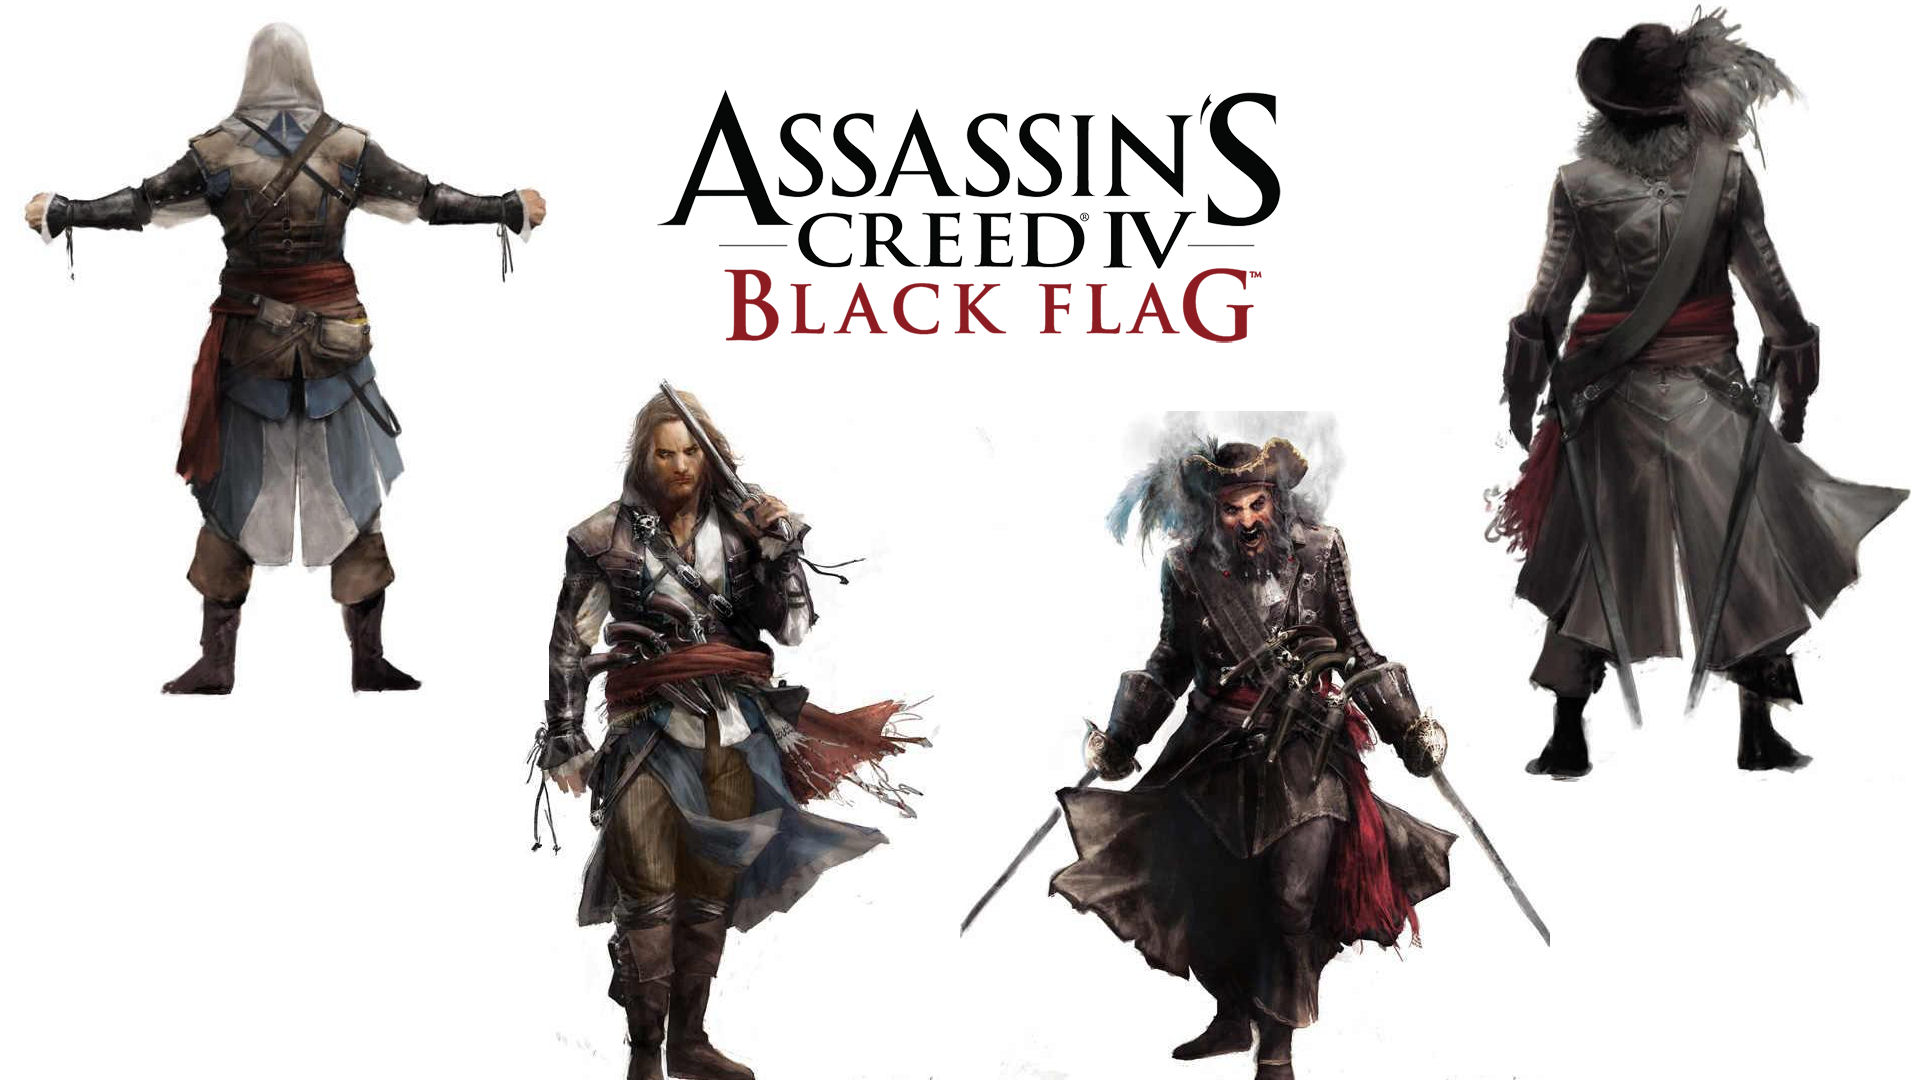 Assasins Creed IV Black Flag Wallpaper Wide